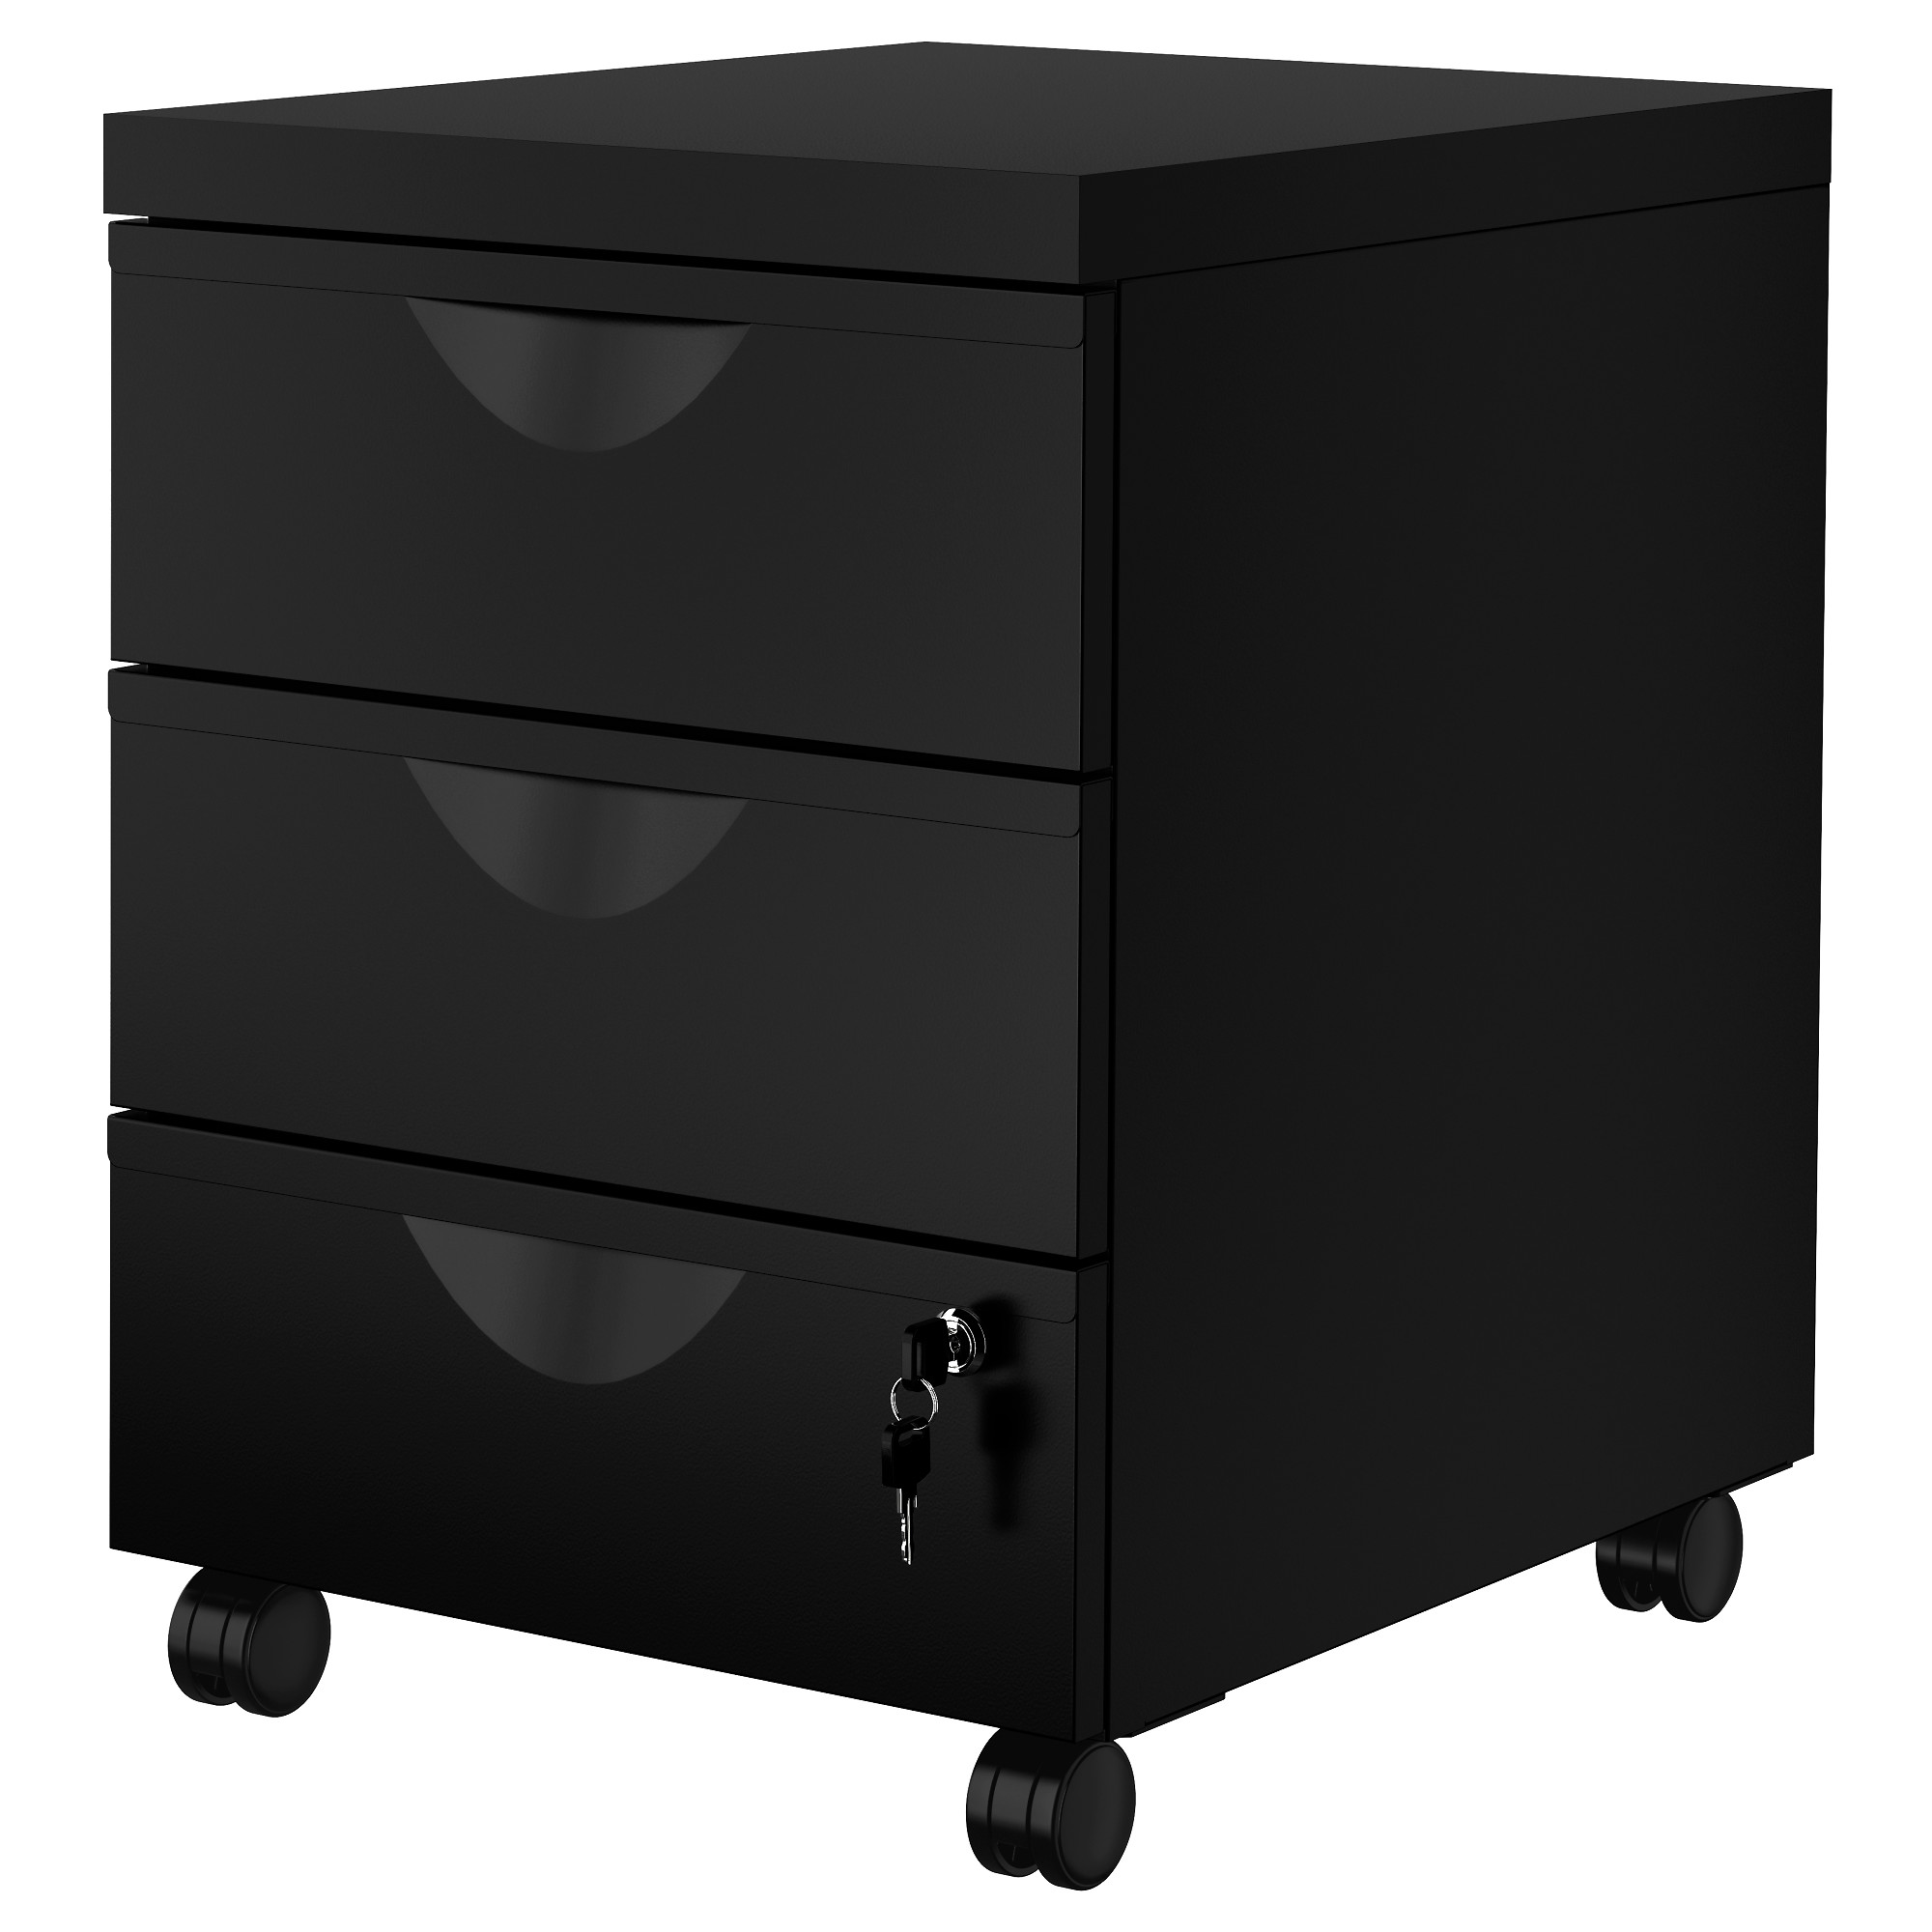 High Quality ERIK Drawer Unit W 3 Drawers On Casters, Black Width: 16 1/8